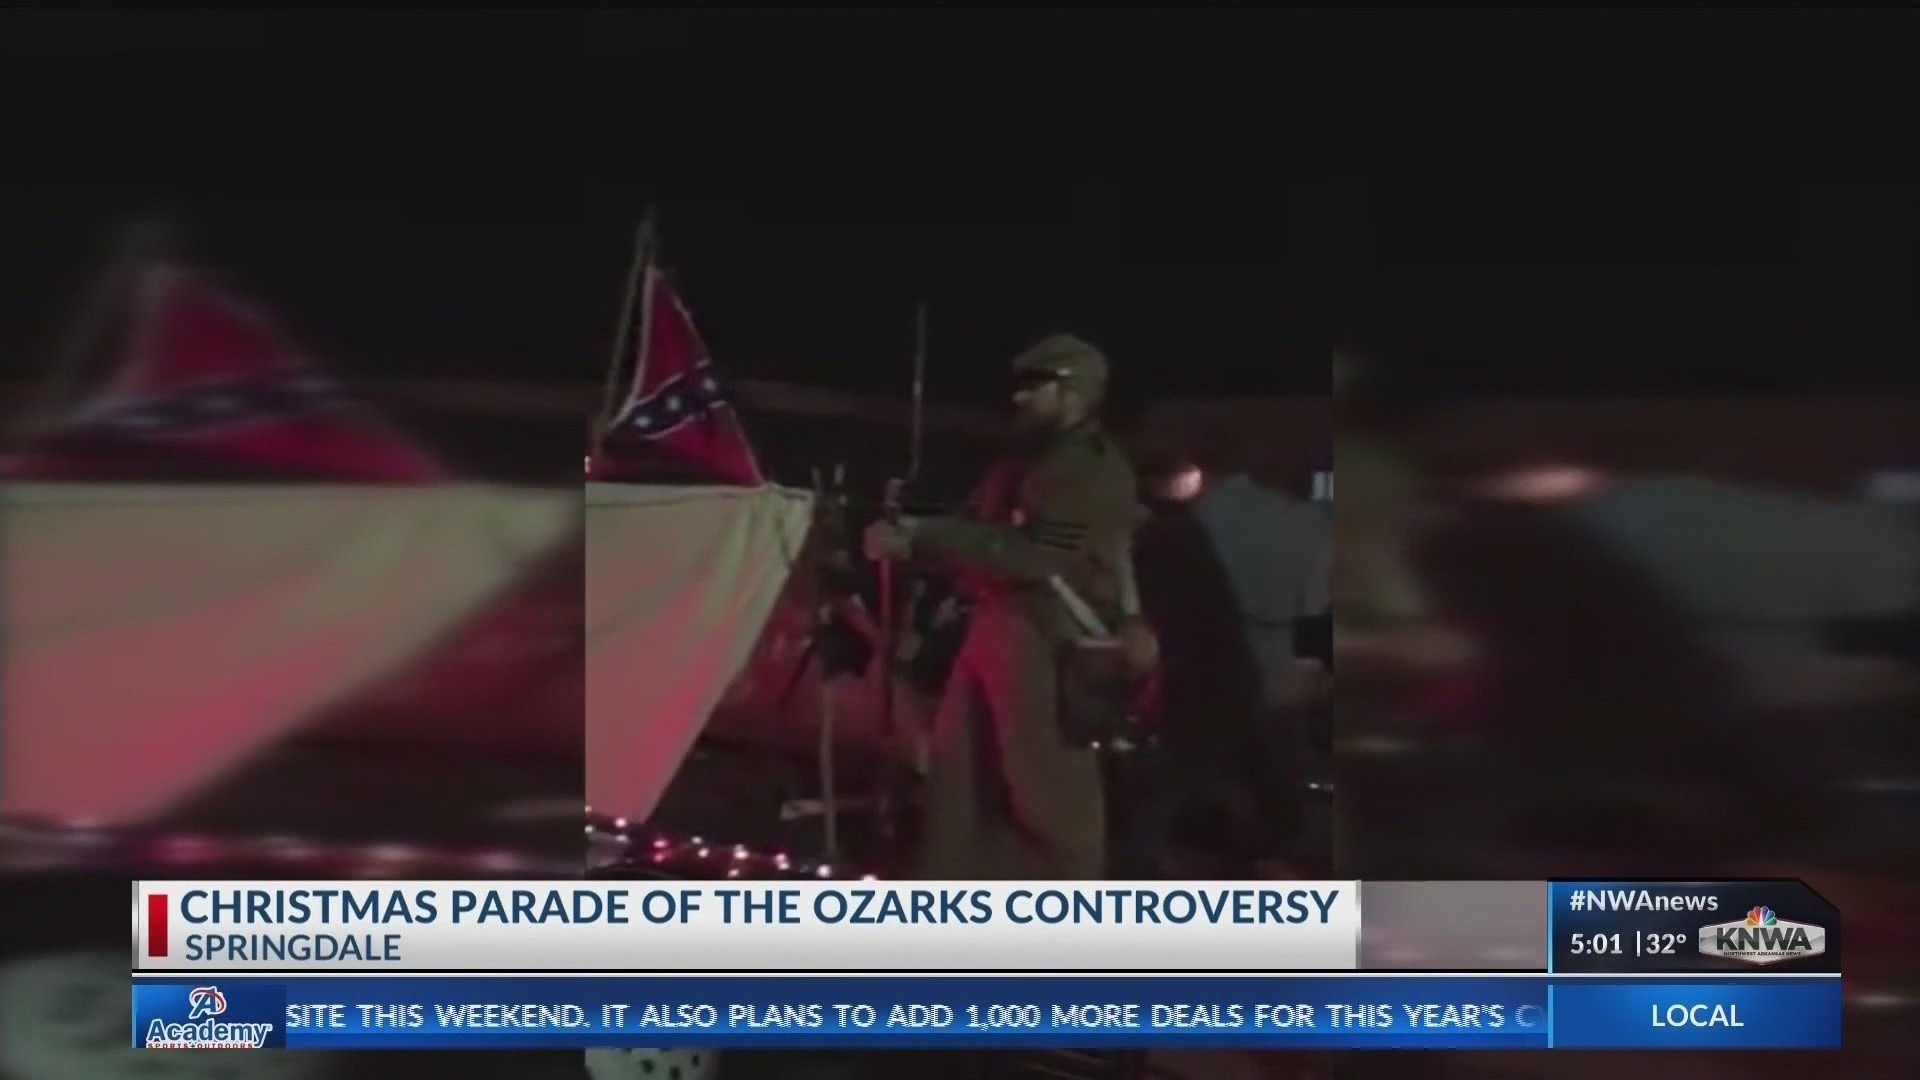 Christmas_Parade_Causes_Controversy_KNWA_0_20181125231411